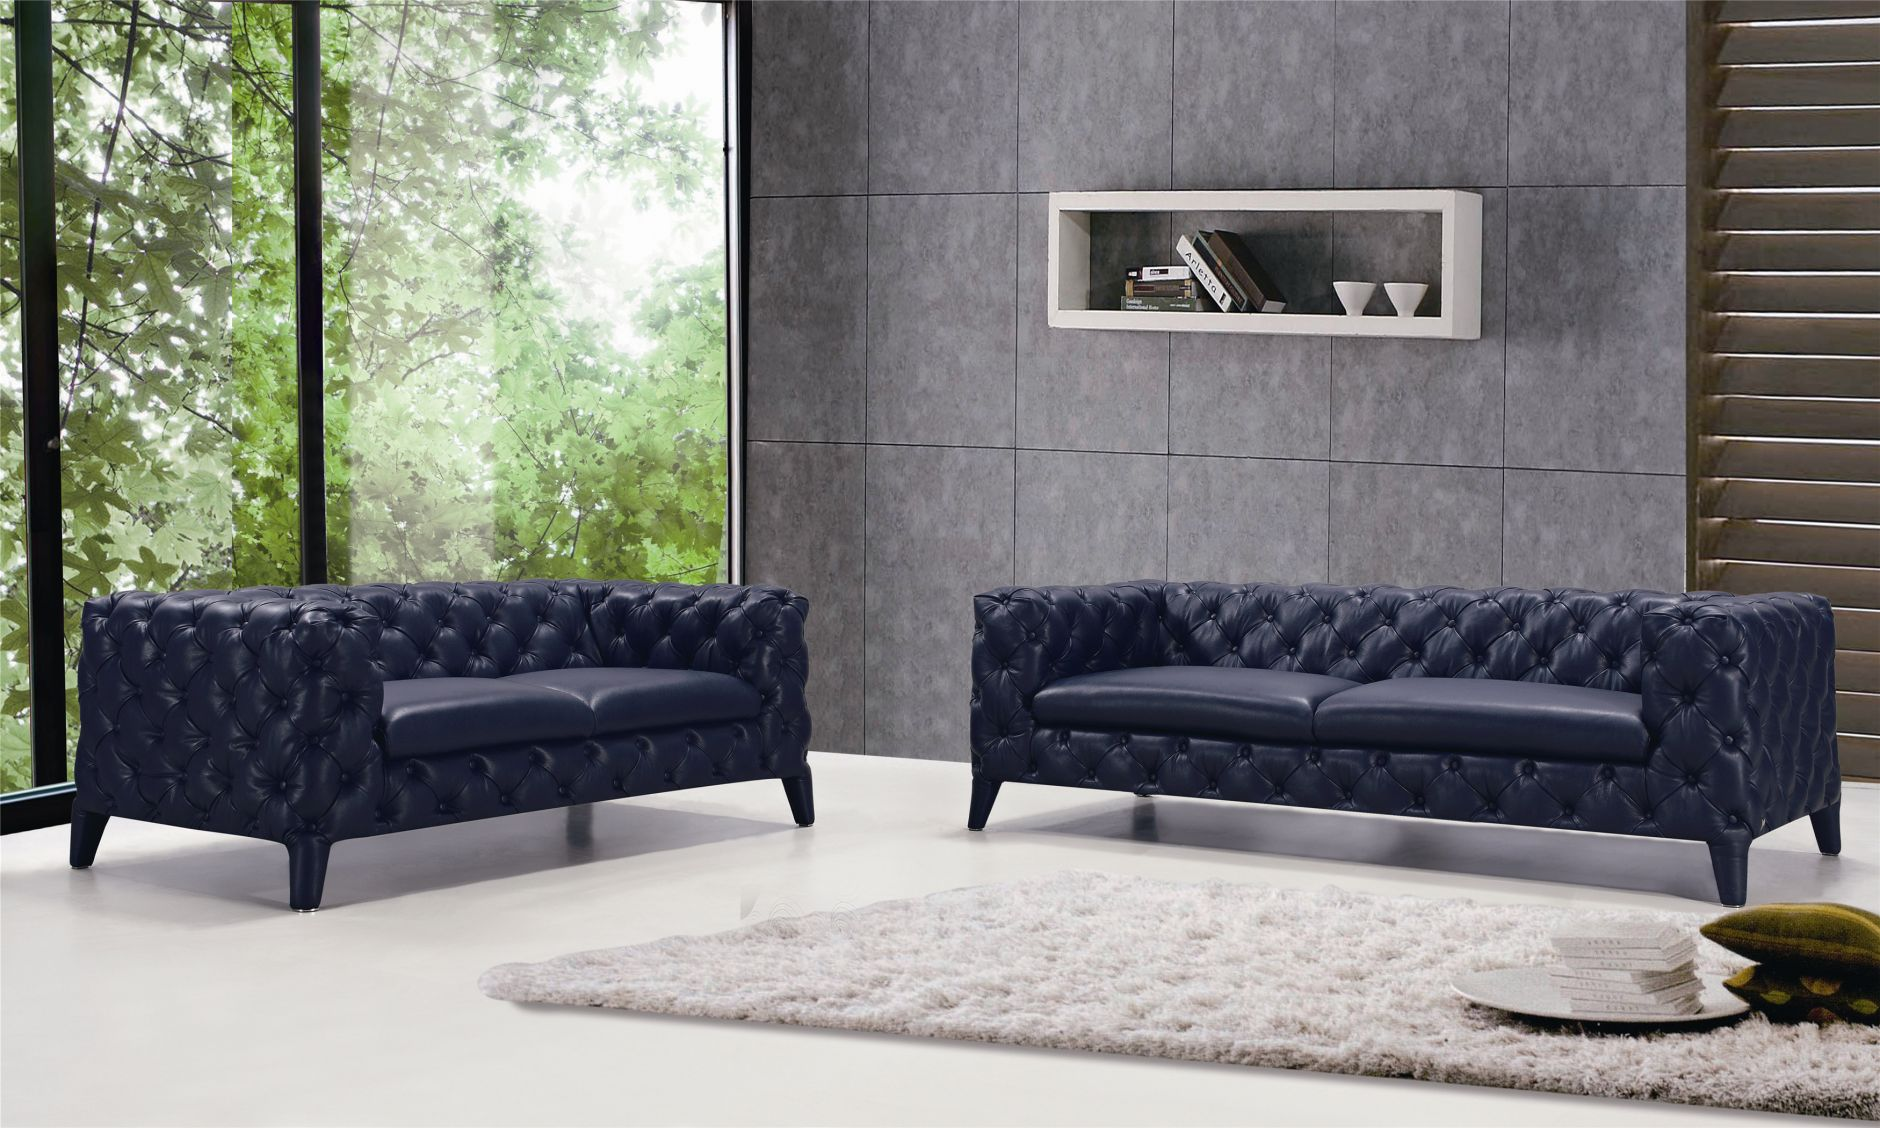 polsterm bel sofas 909die m bel aus italien. Black Bedroom Furniture Sets. Home Design Ideas